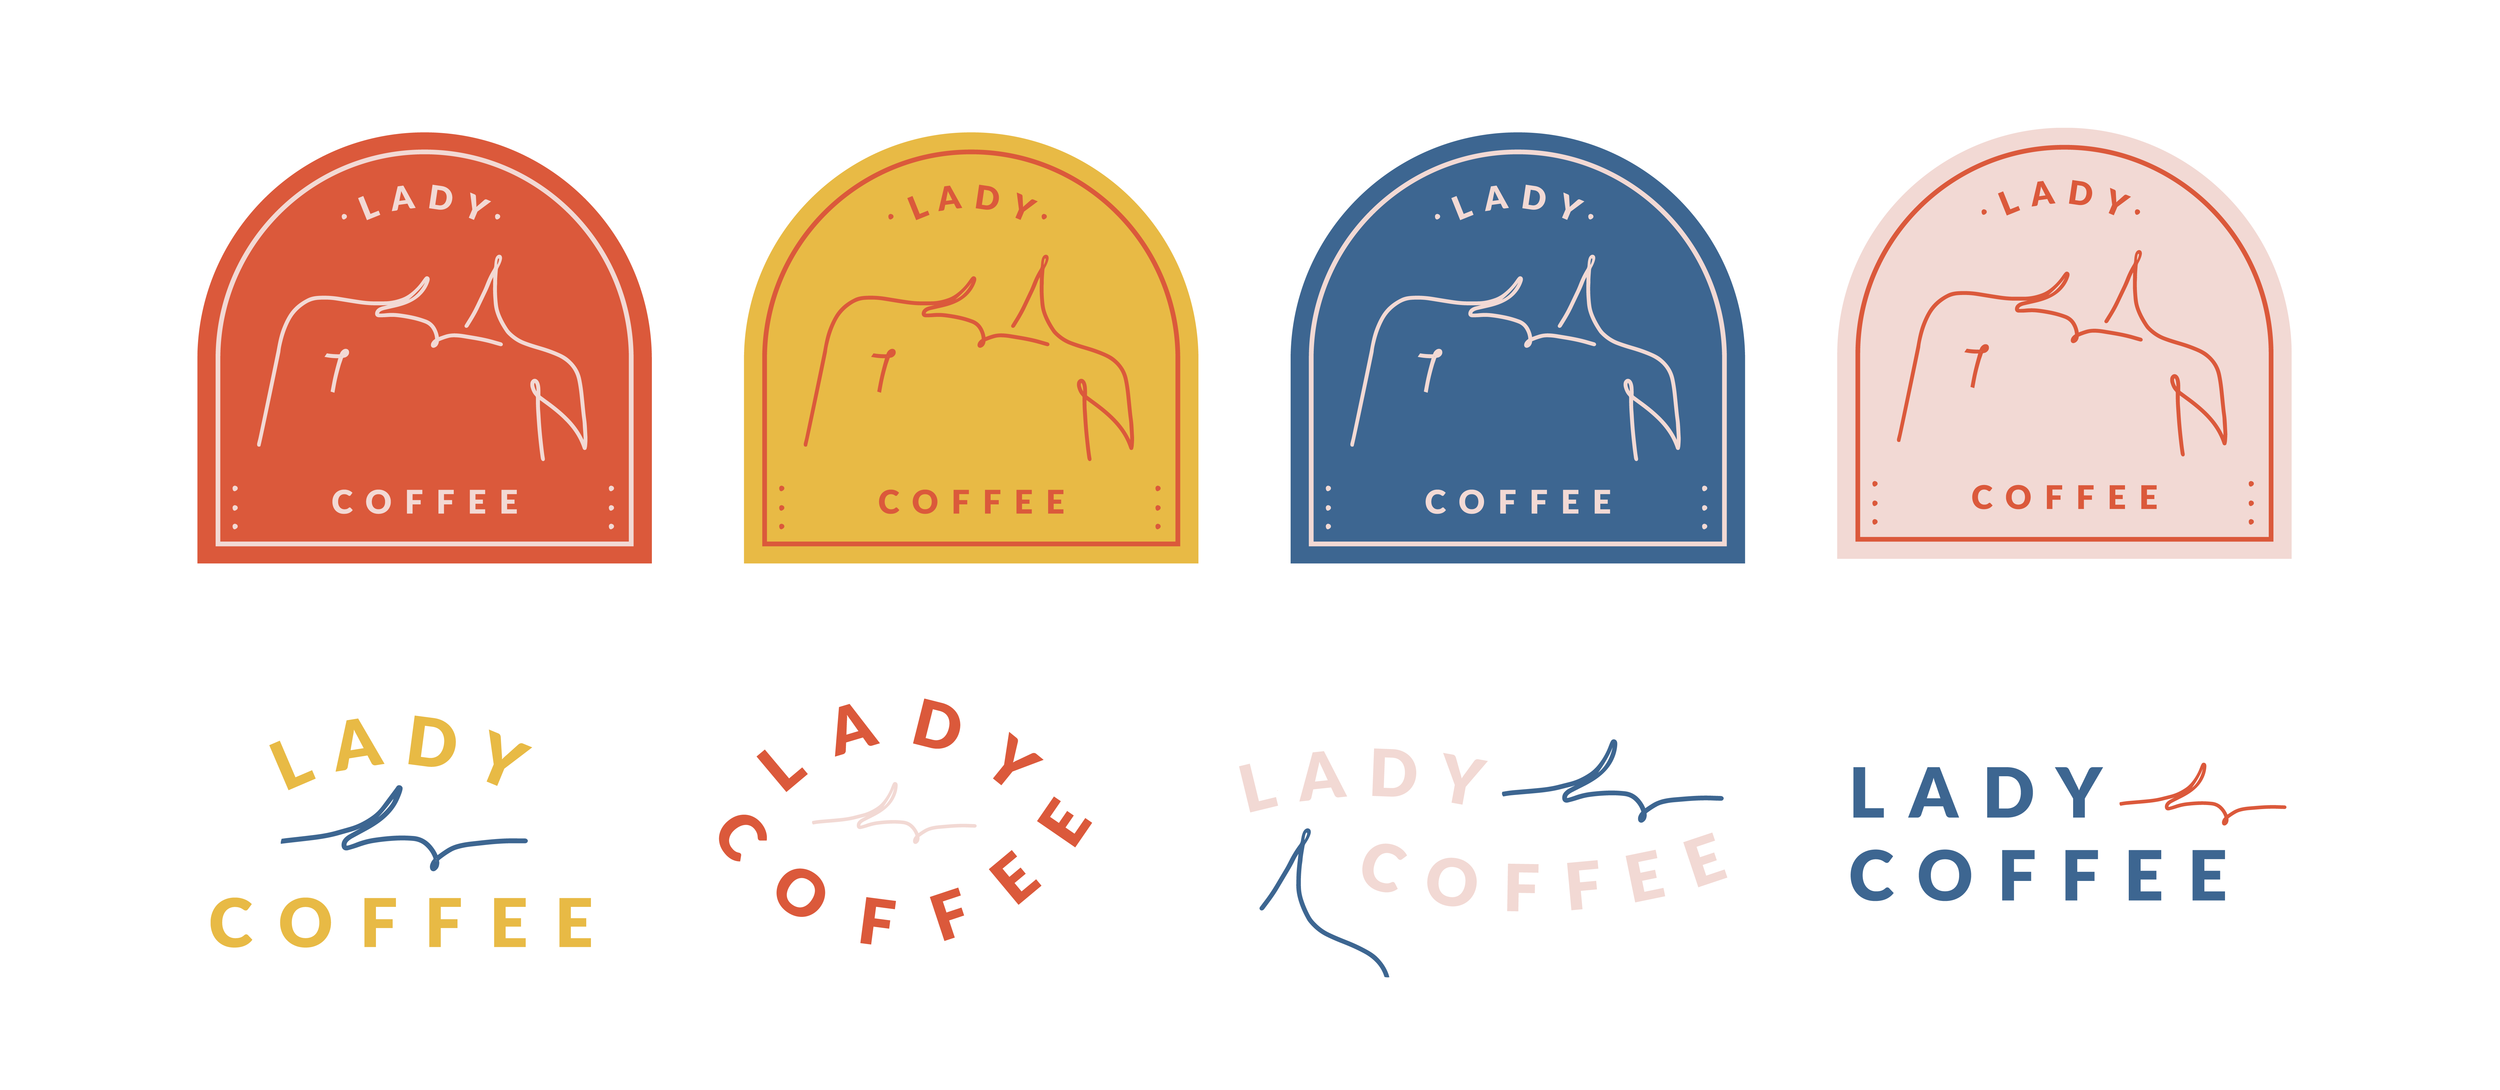 LadyCoffee-01.png